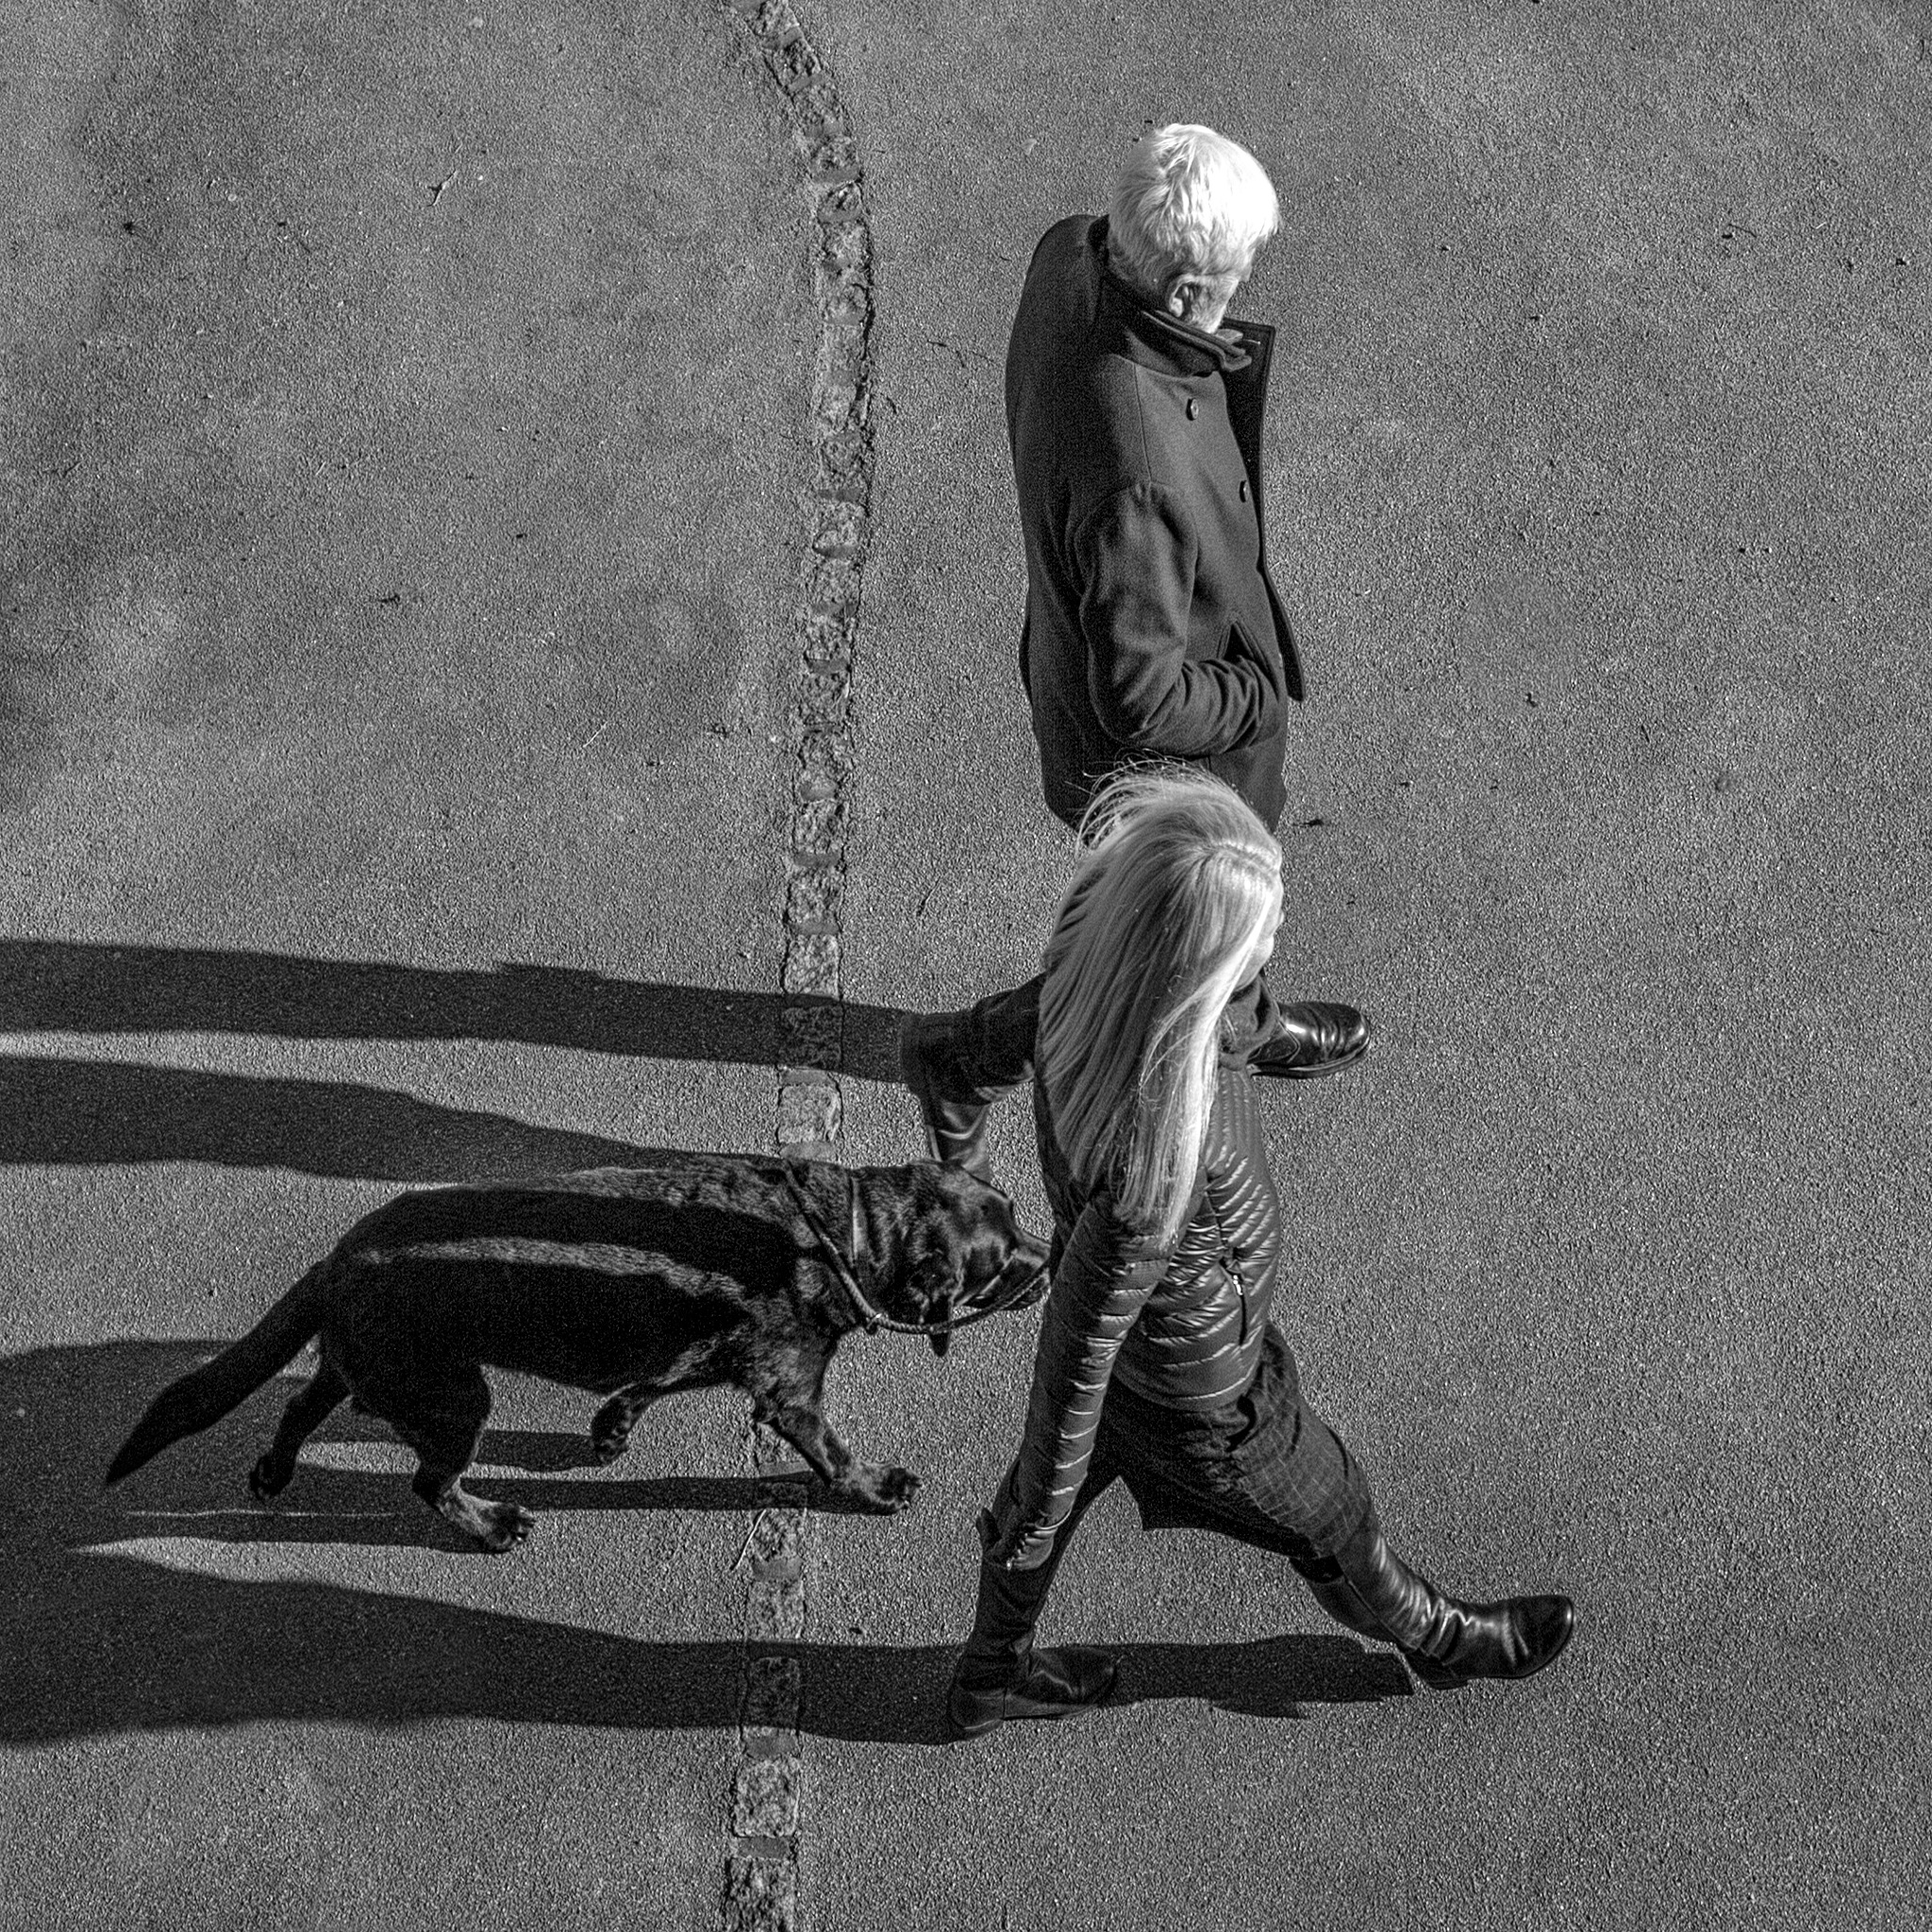 City Dog Walkers by mike hughes